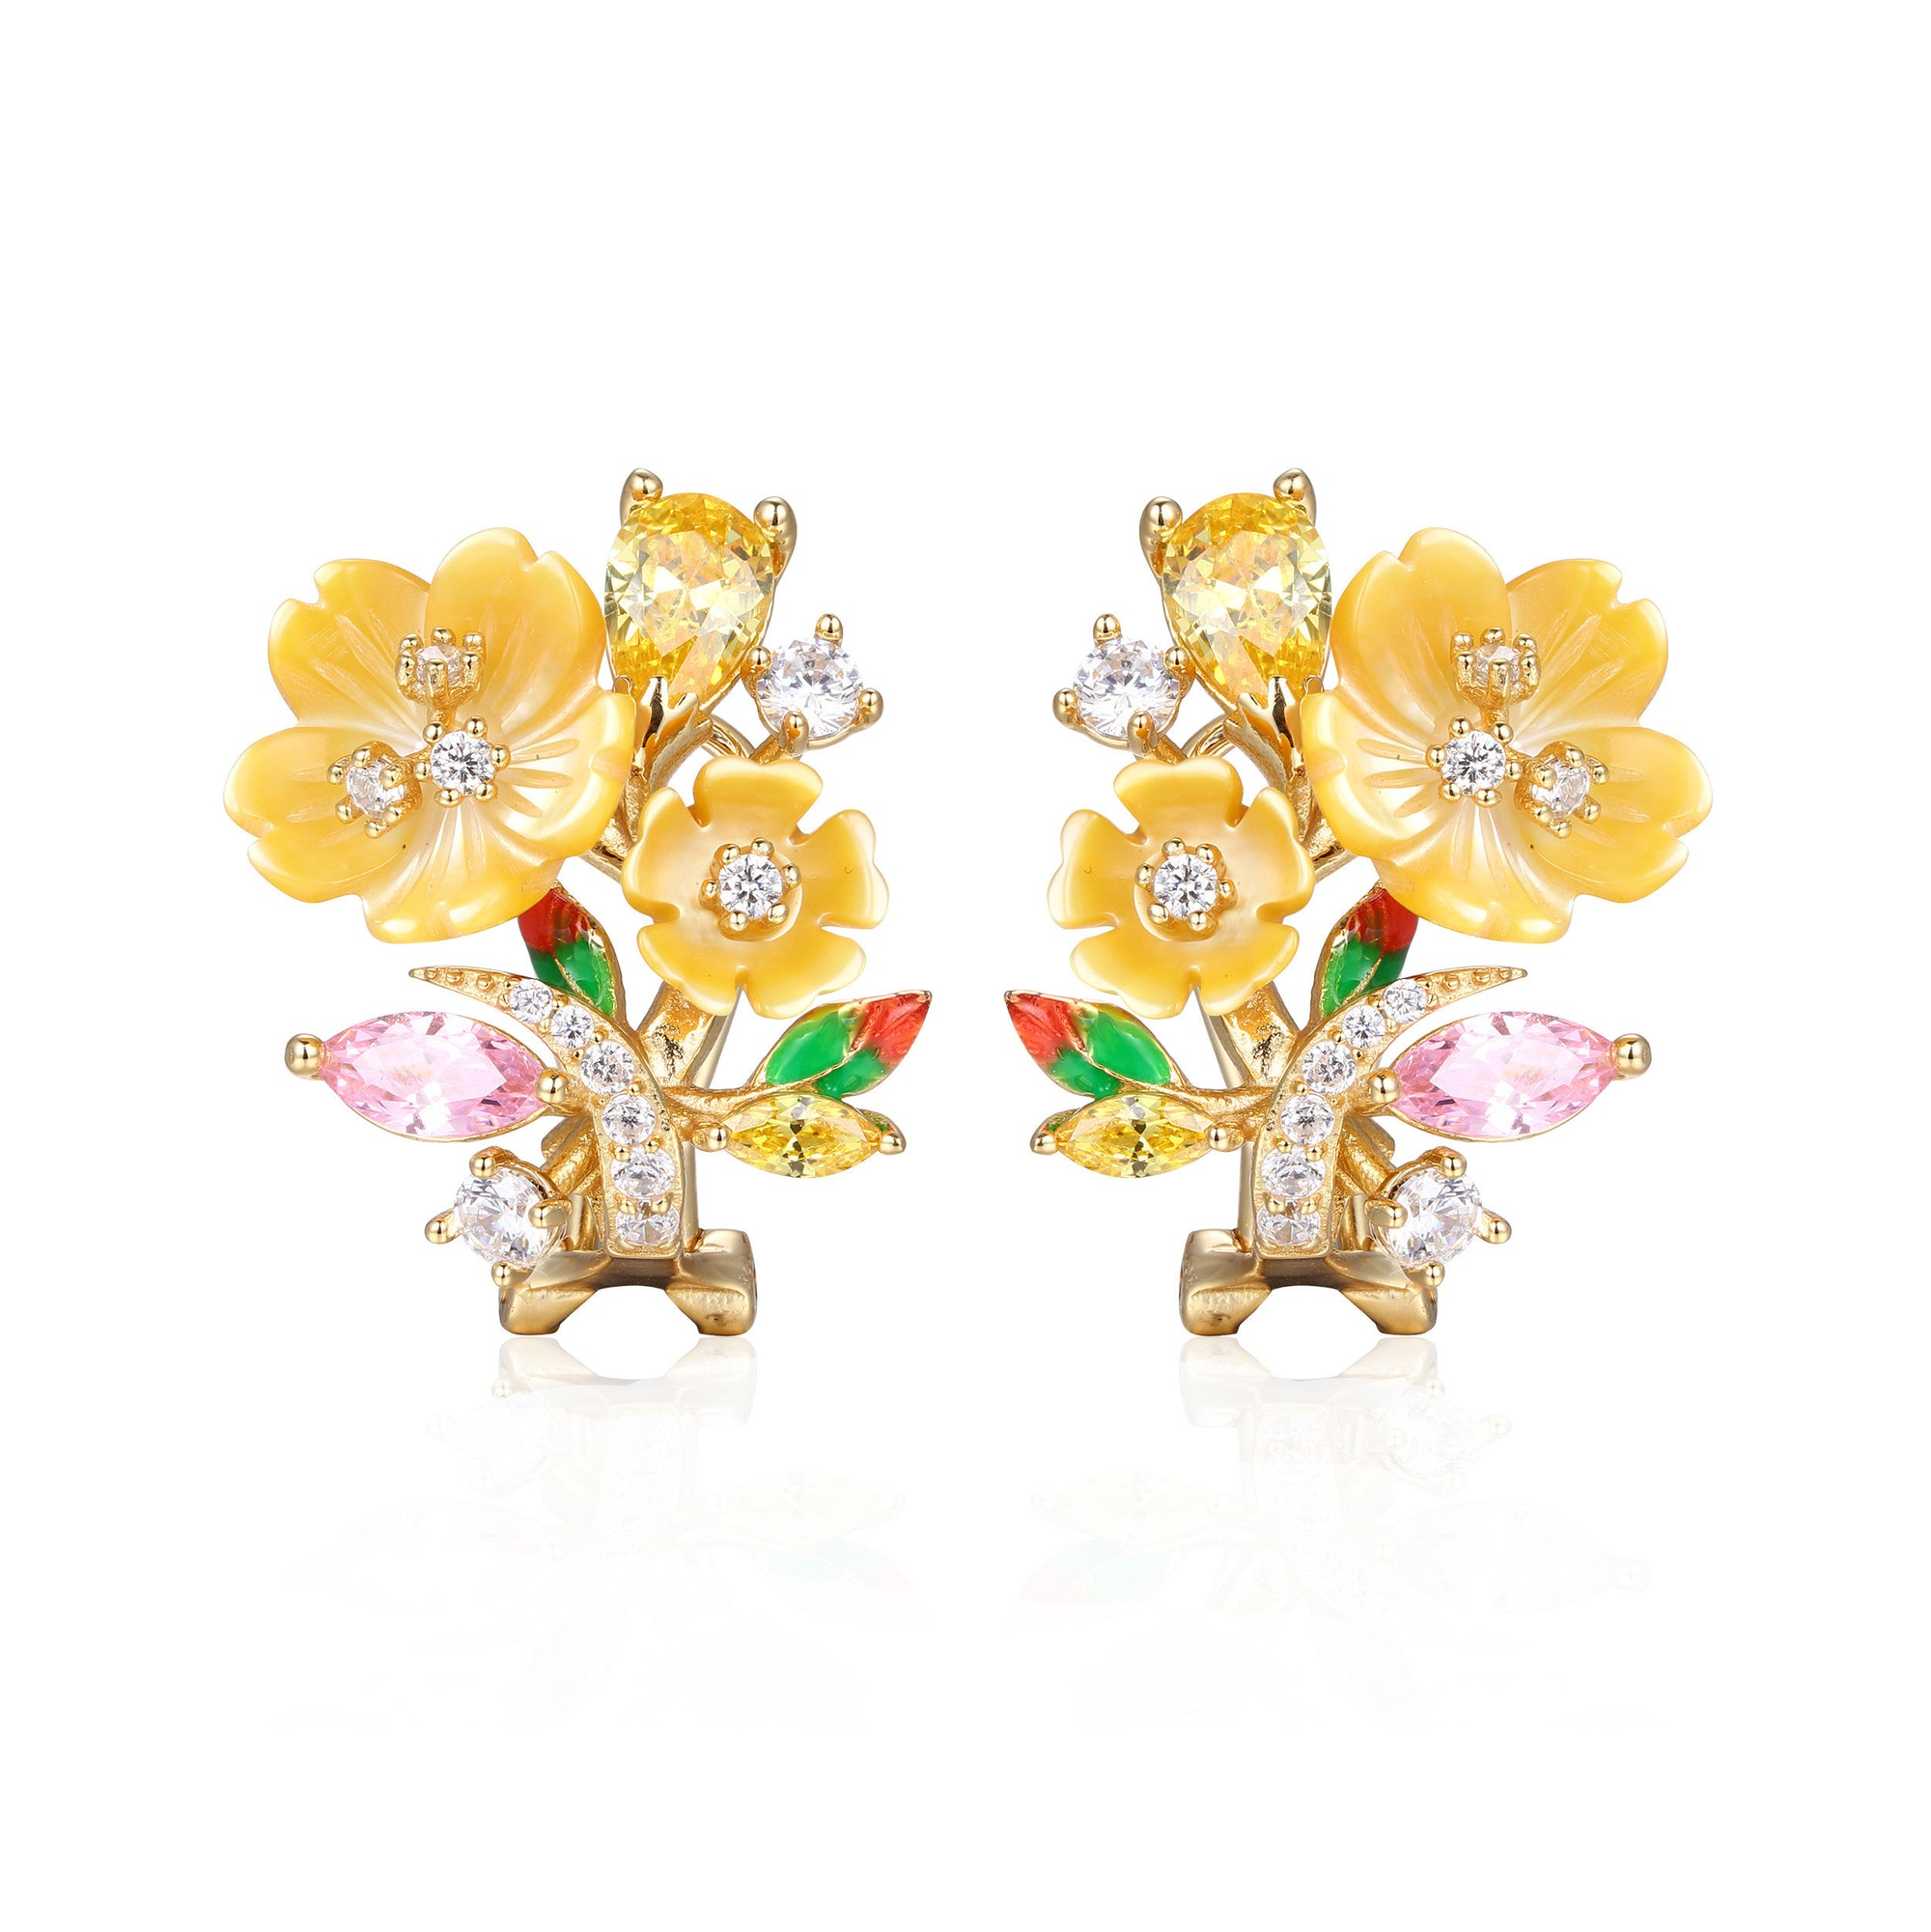 Sunset Bouquet Earrings - penelope-it.com